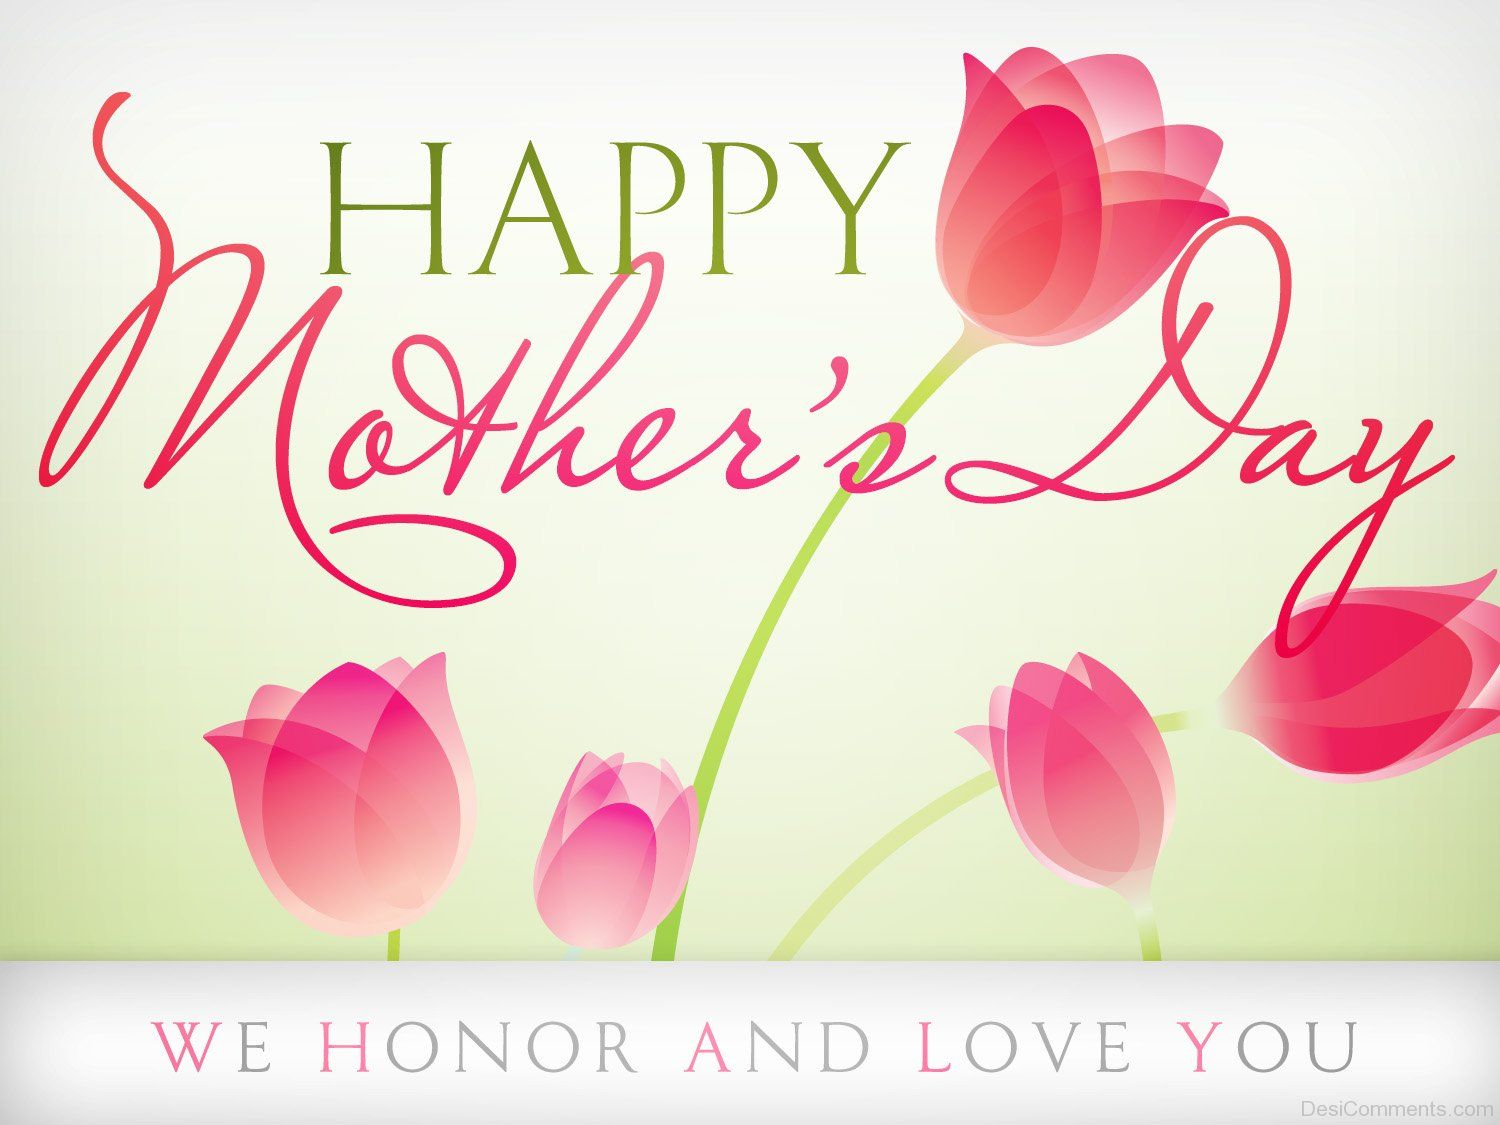 Download free happy mothers day pictures and quotes for facebook download free happy mothers day pictures and quotes for facebook instagram tumblr share kristyandbryce Choice Image